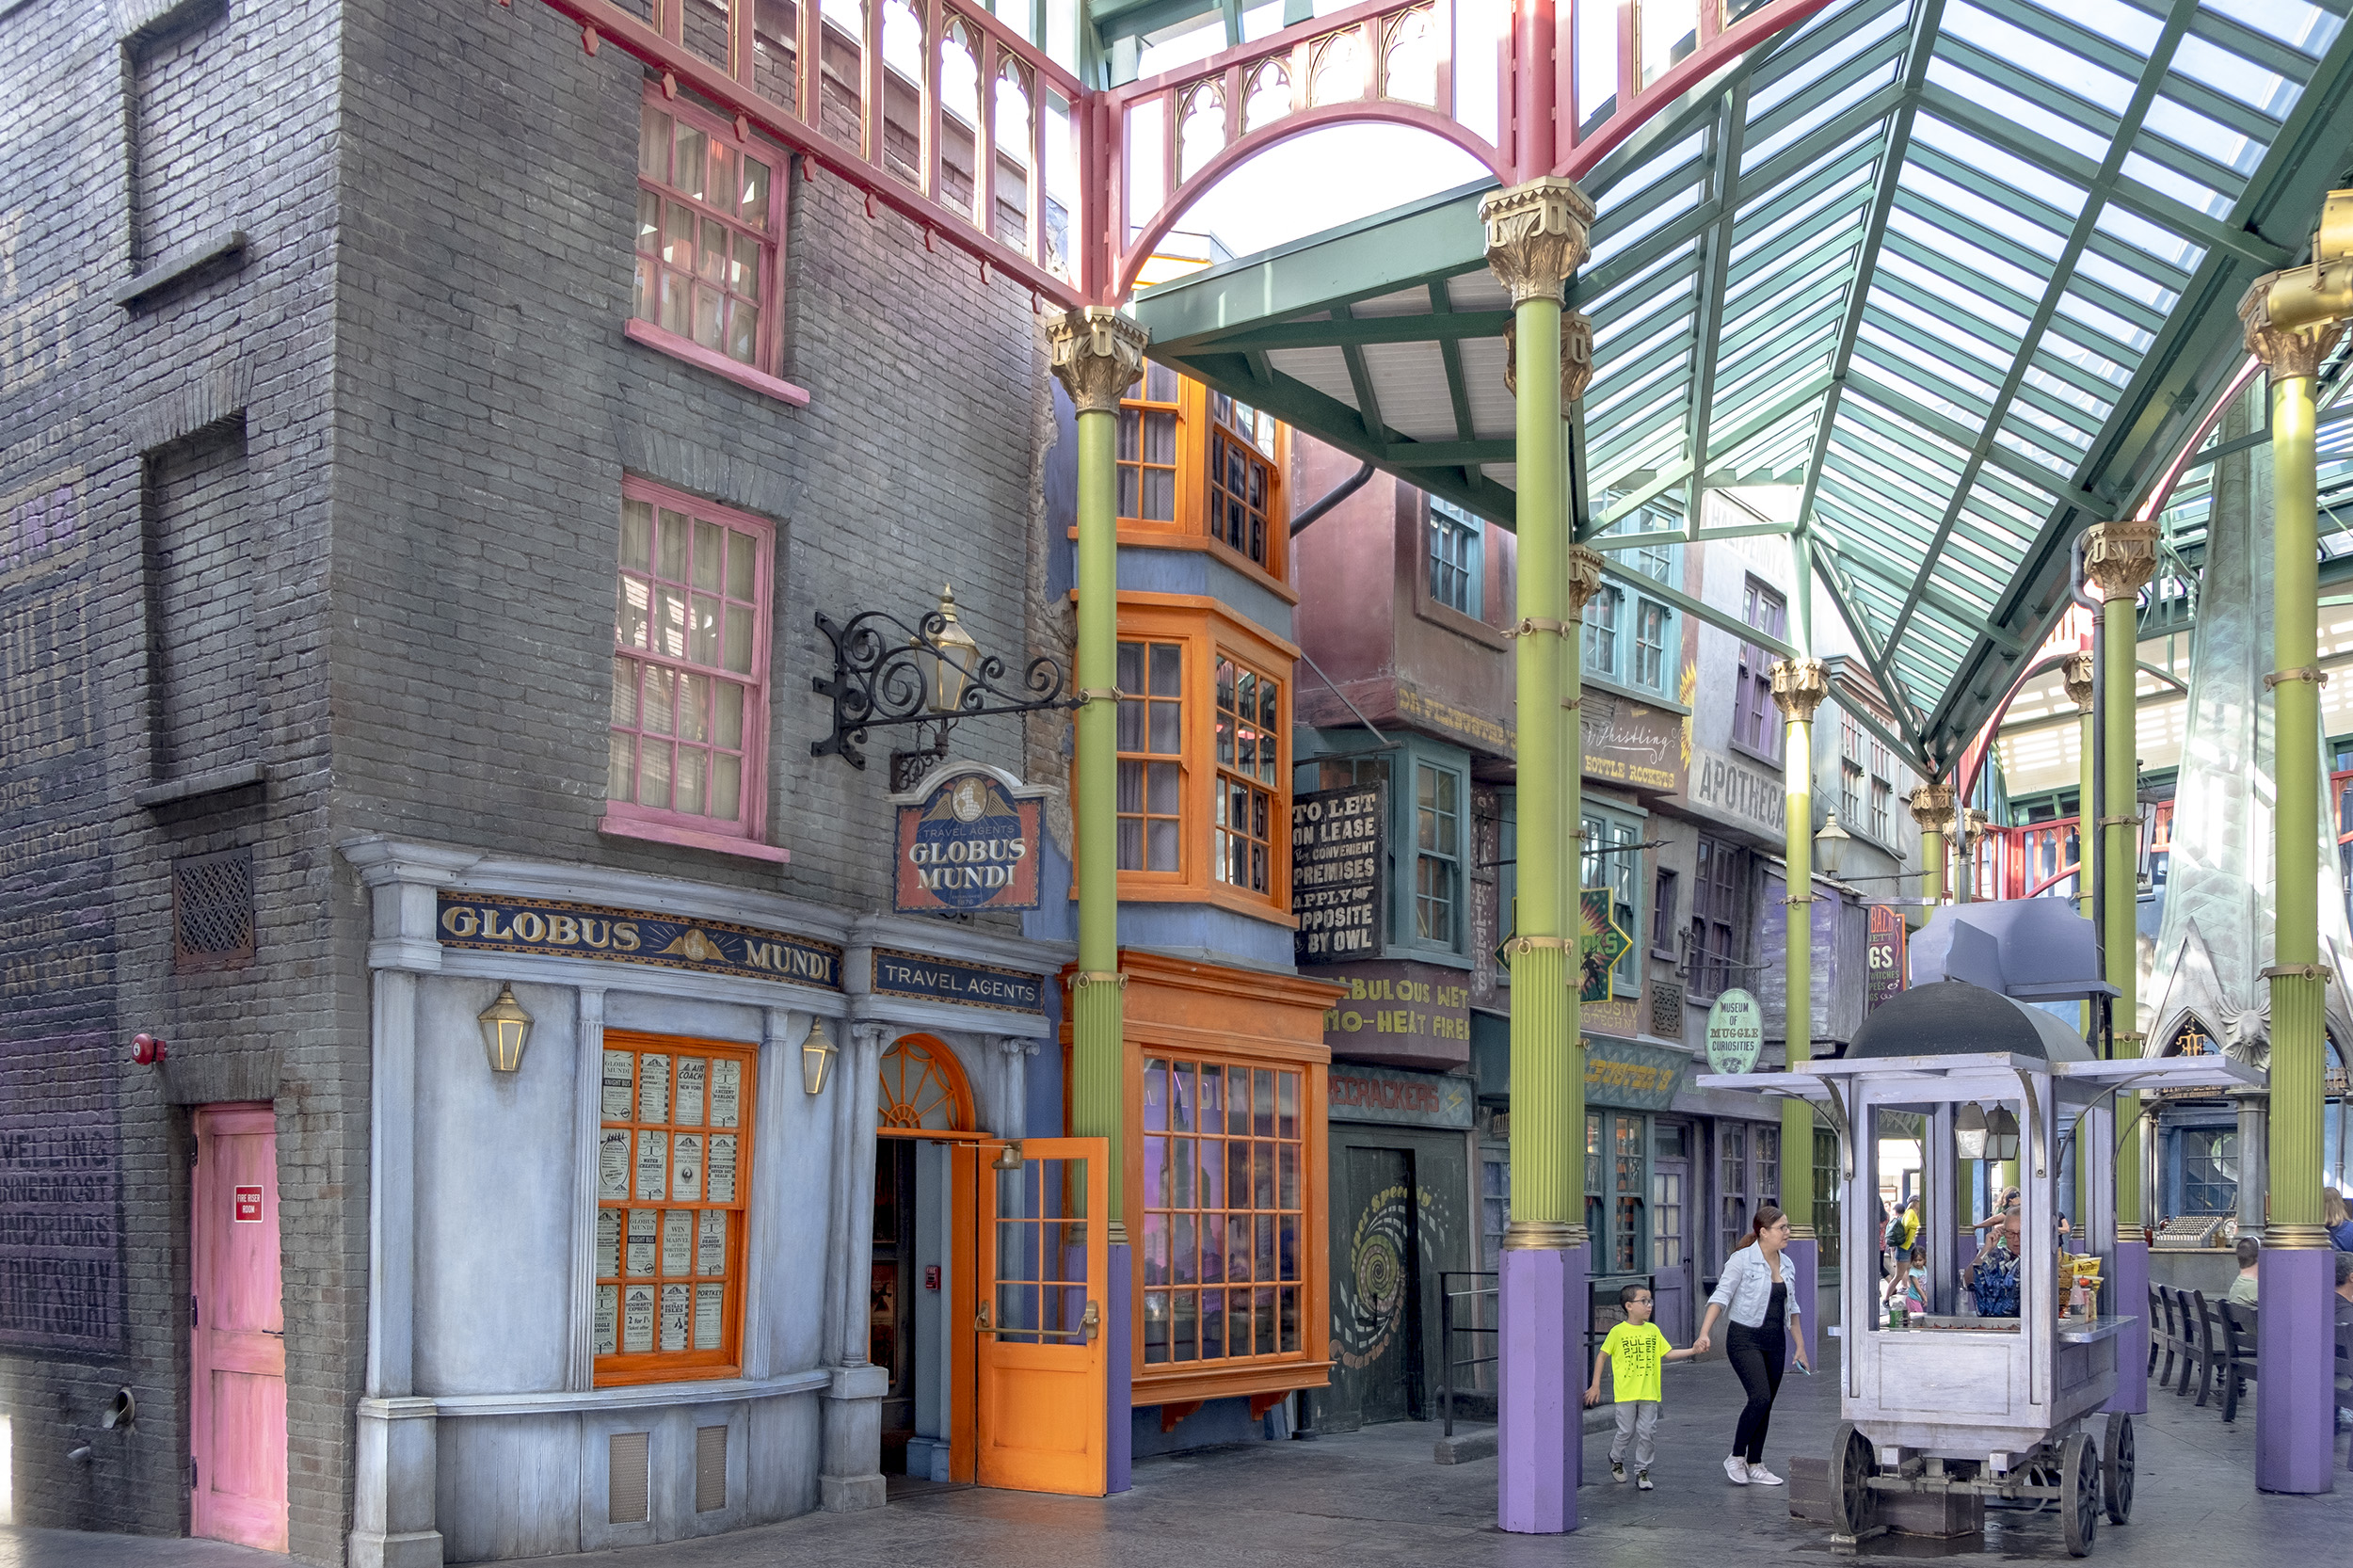 Diagon Alley. The wizarding world of harry potter.